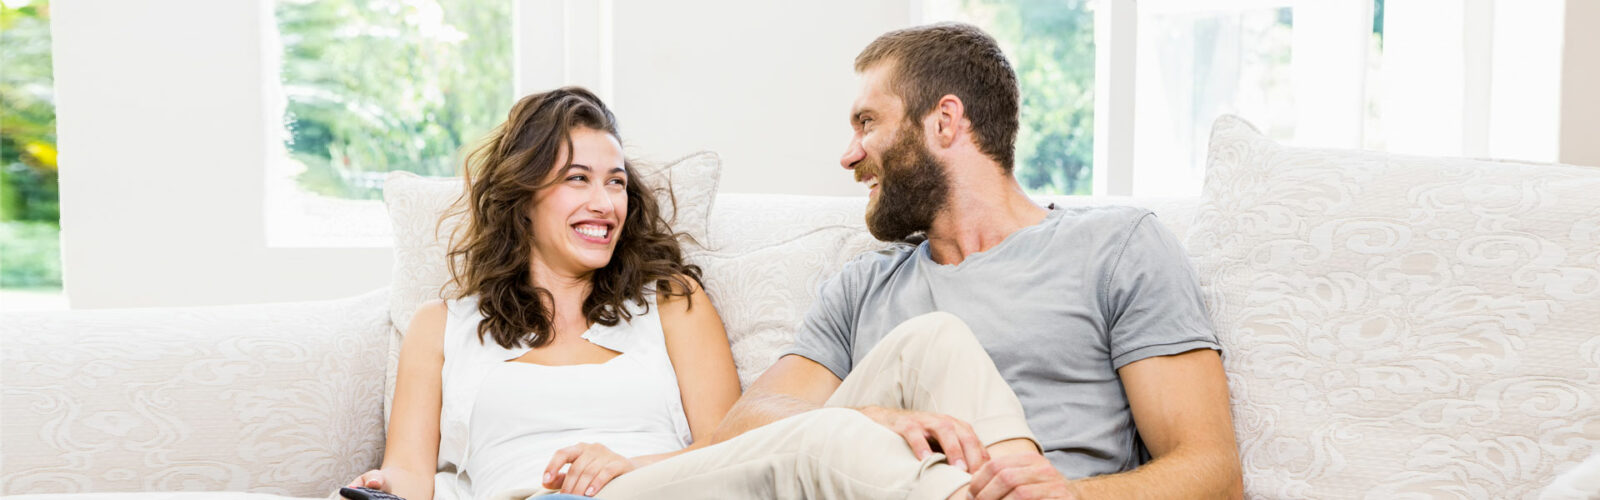 couple spending quality time with each other